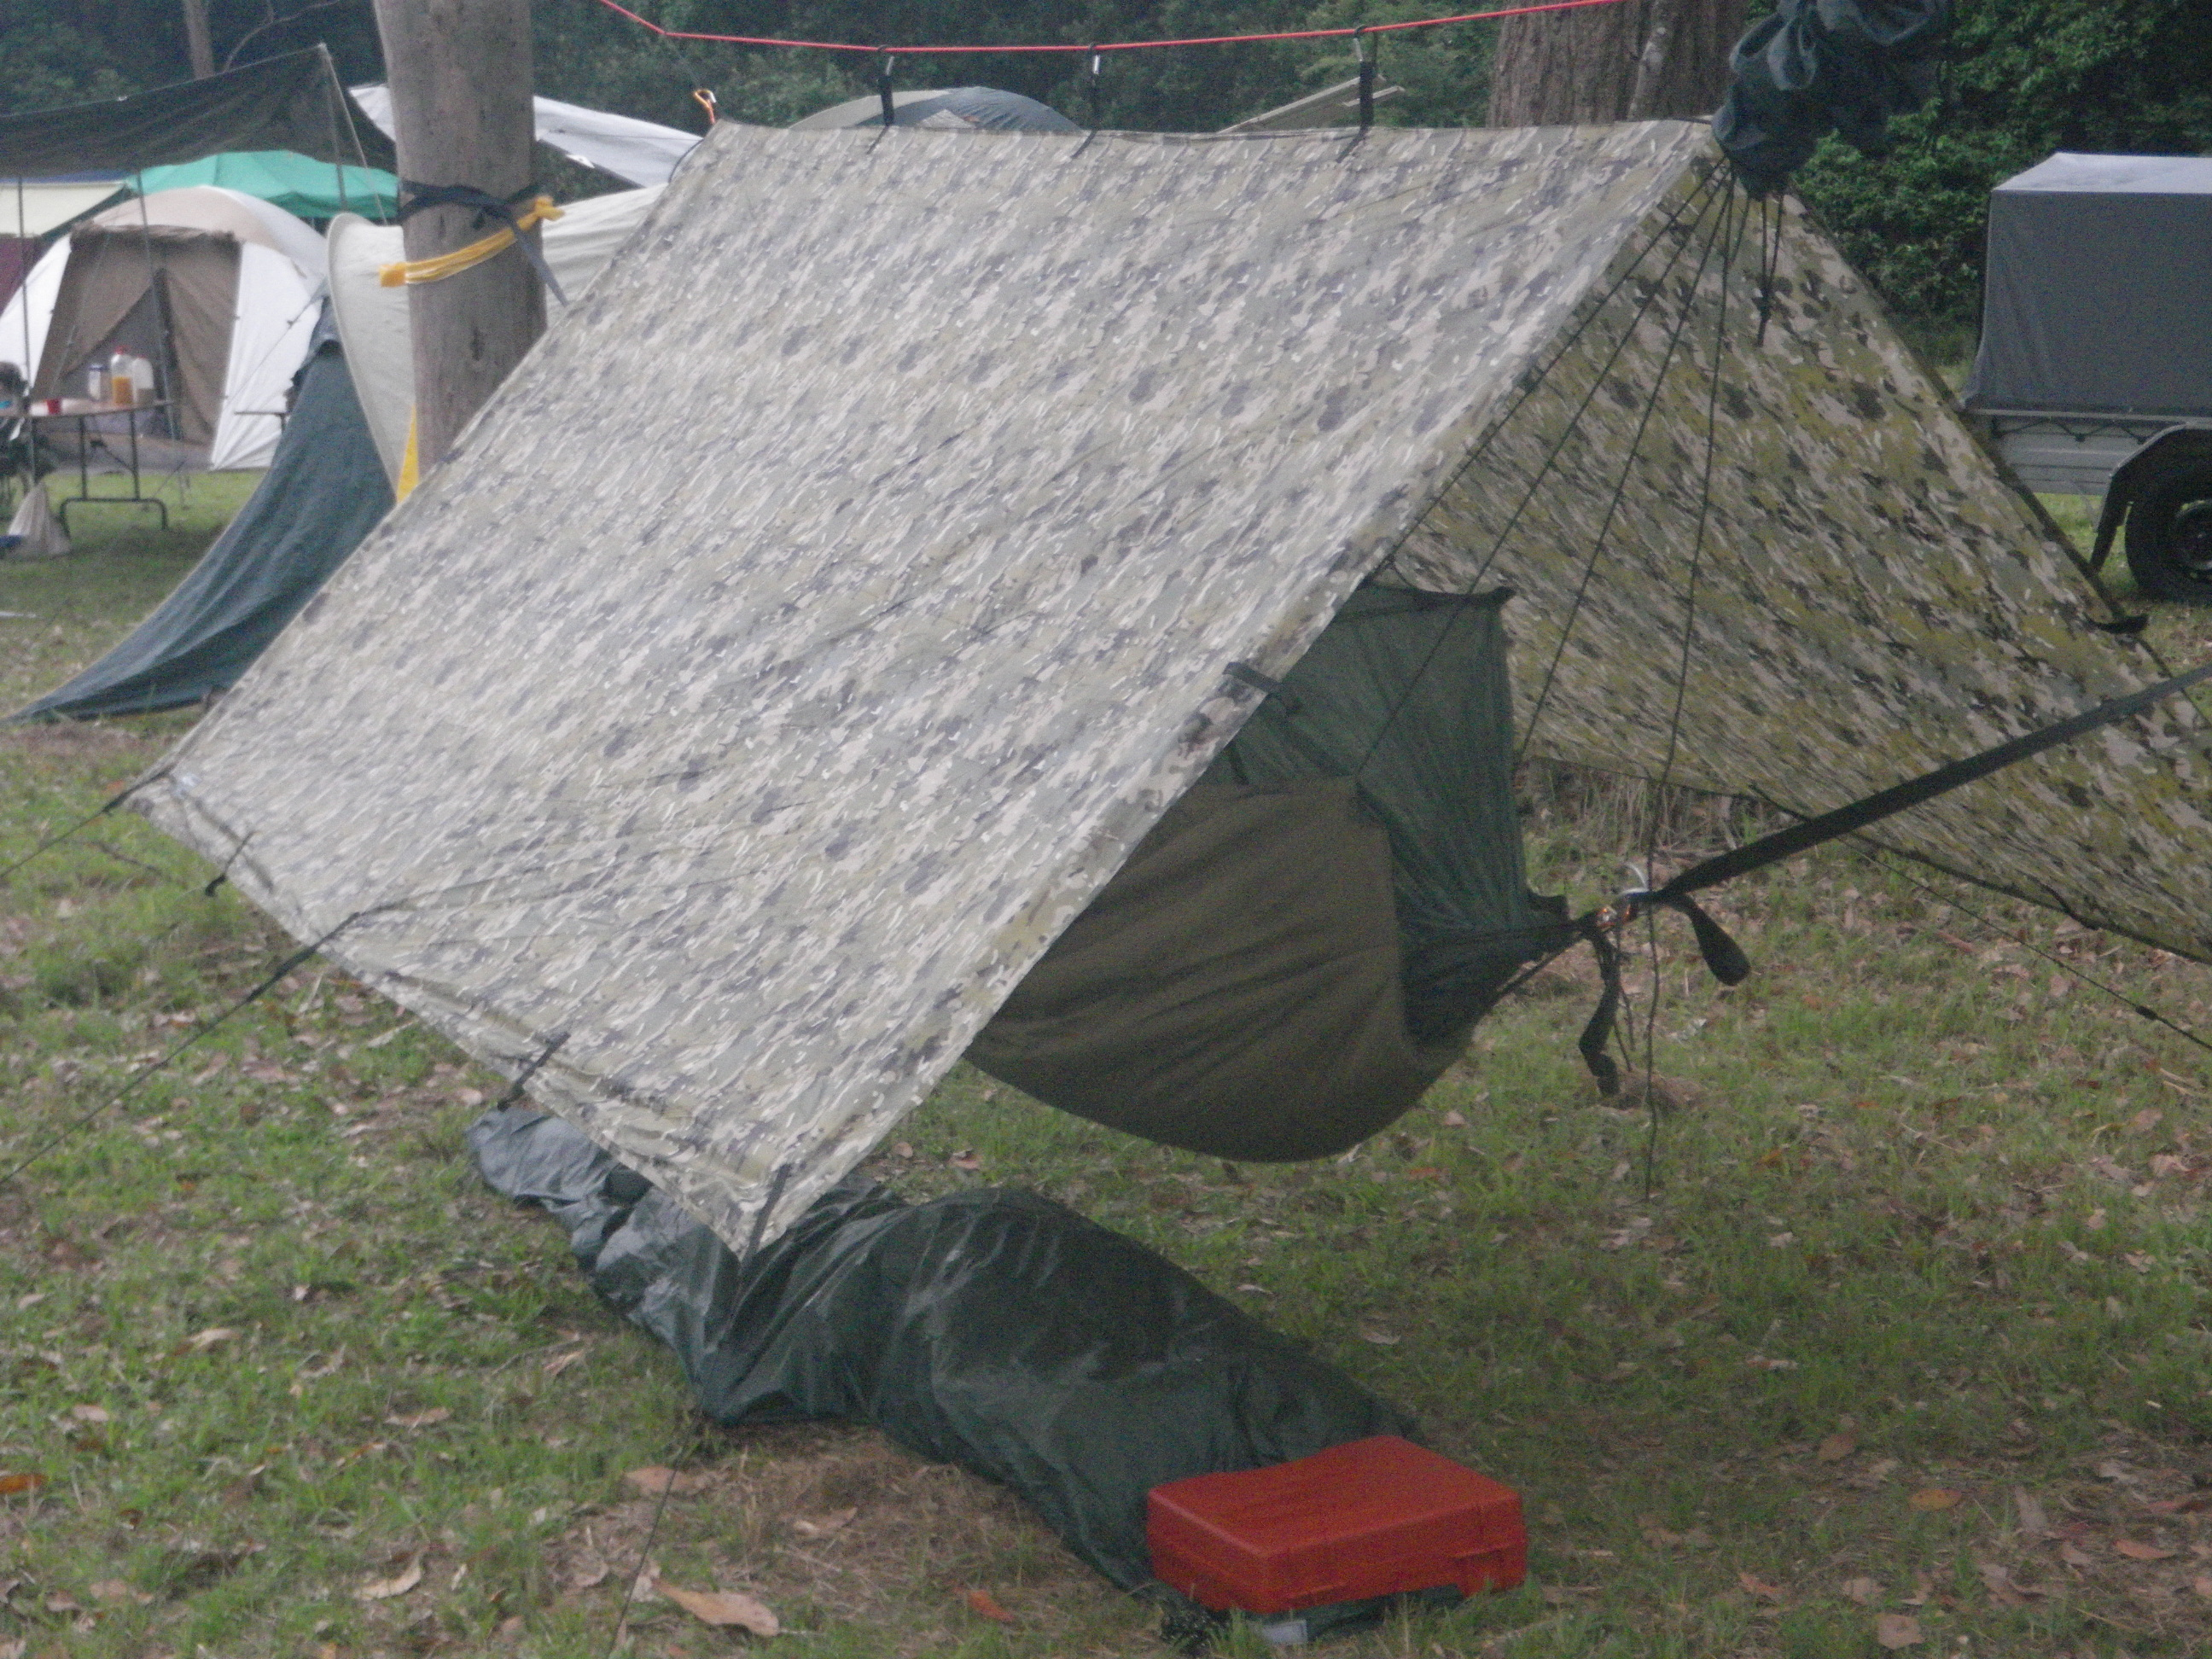 dd mc 3x3 tarp dd mc 3x3 tarp   hammock forums gallery  rh   hammockforums